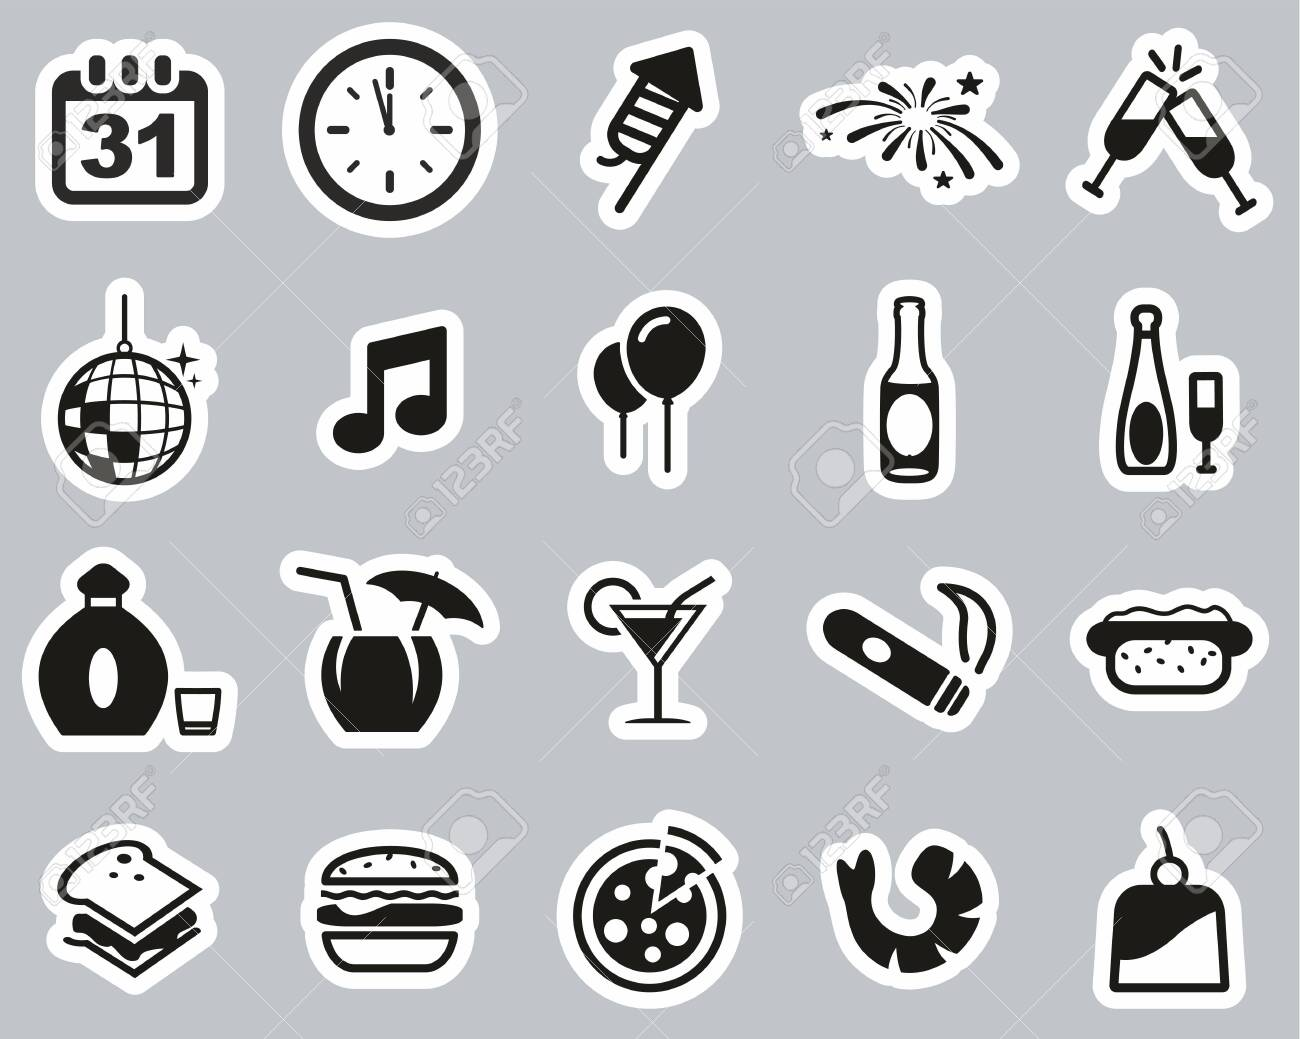 New Years Eve Or New Years Party Icons Black White Sticker Royalty Free Cliparts Vectors And Stock Illustration Image 138785705